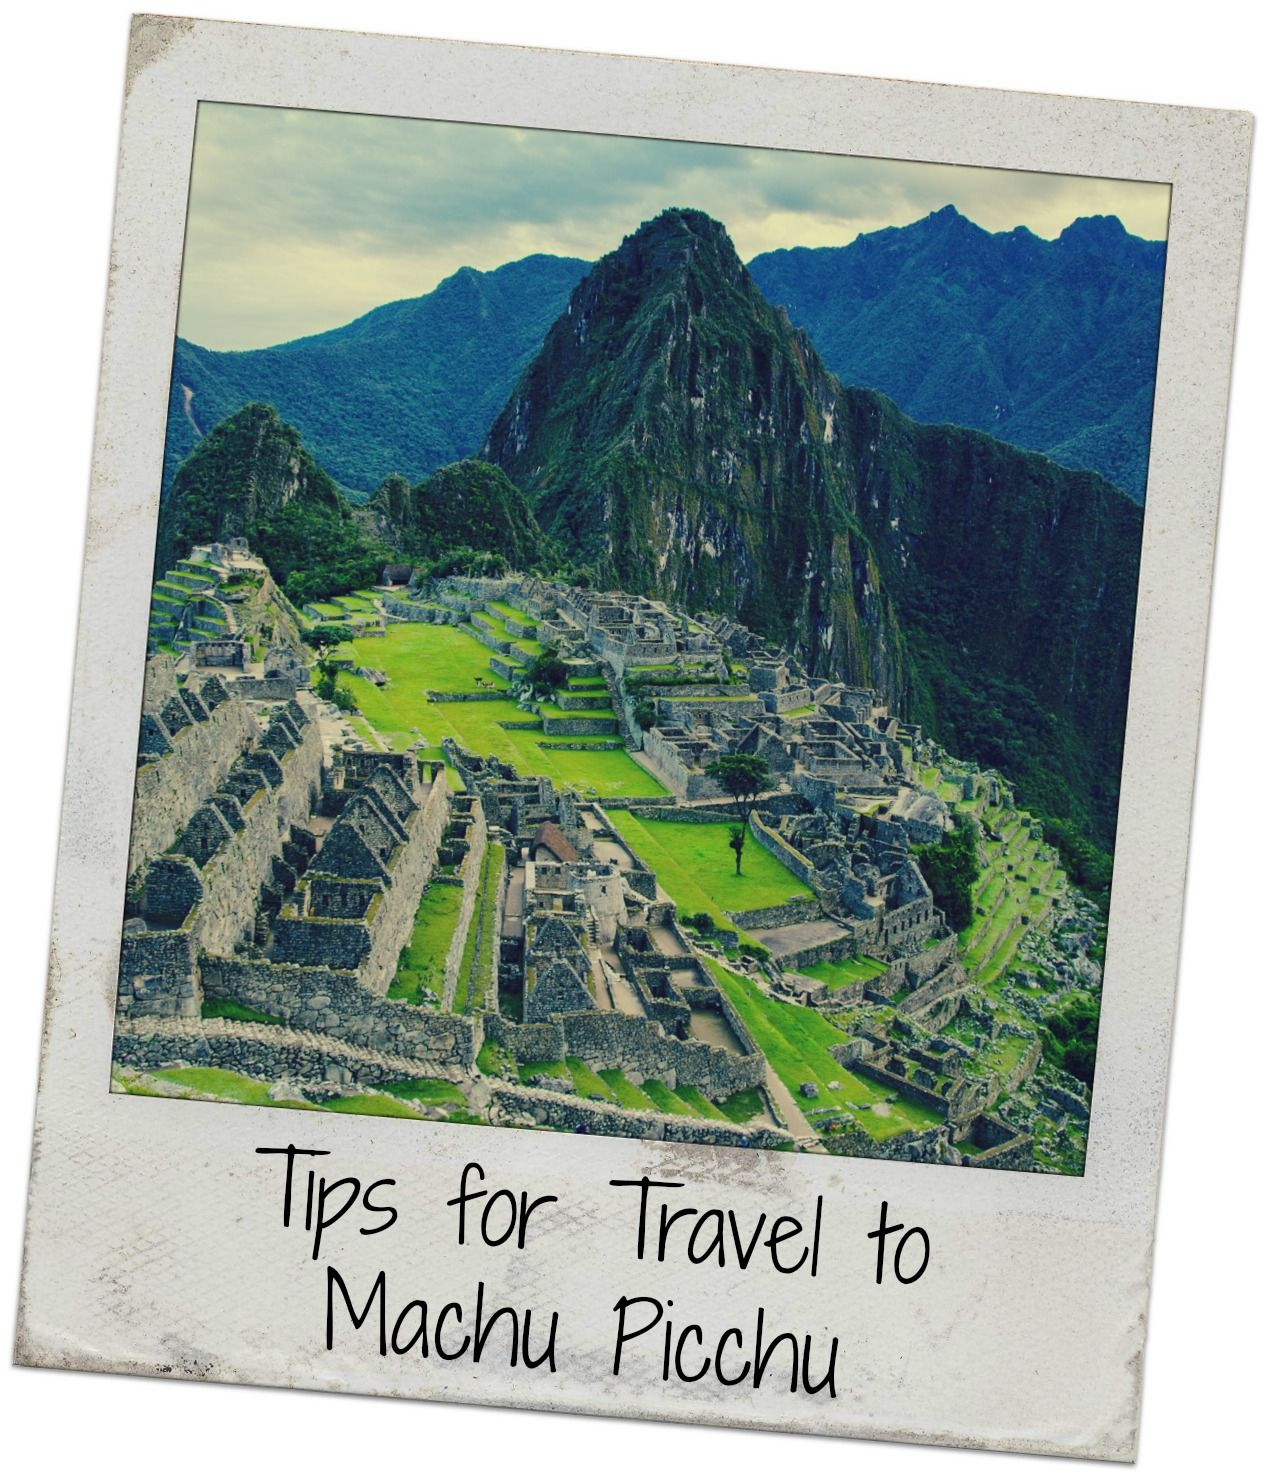 Tips for travel to Machu Picchu #Peru | http://www.everintransit.com/tips-for-travel-to-machu-picchu/